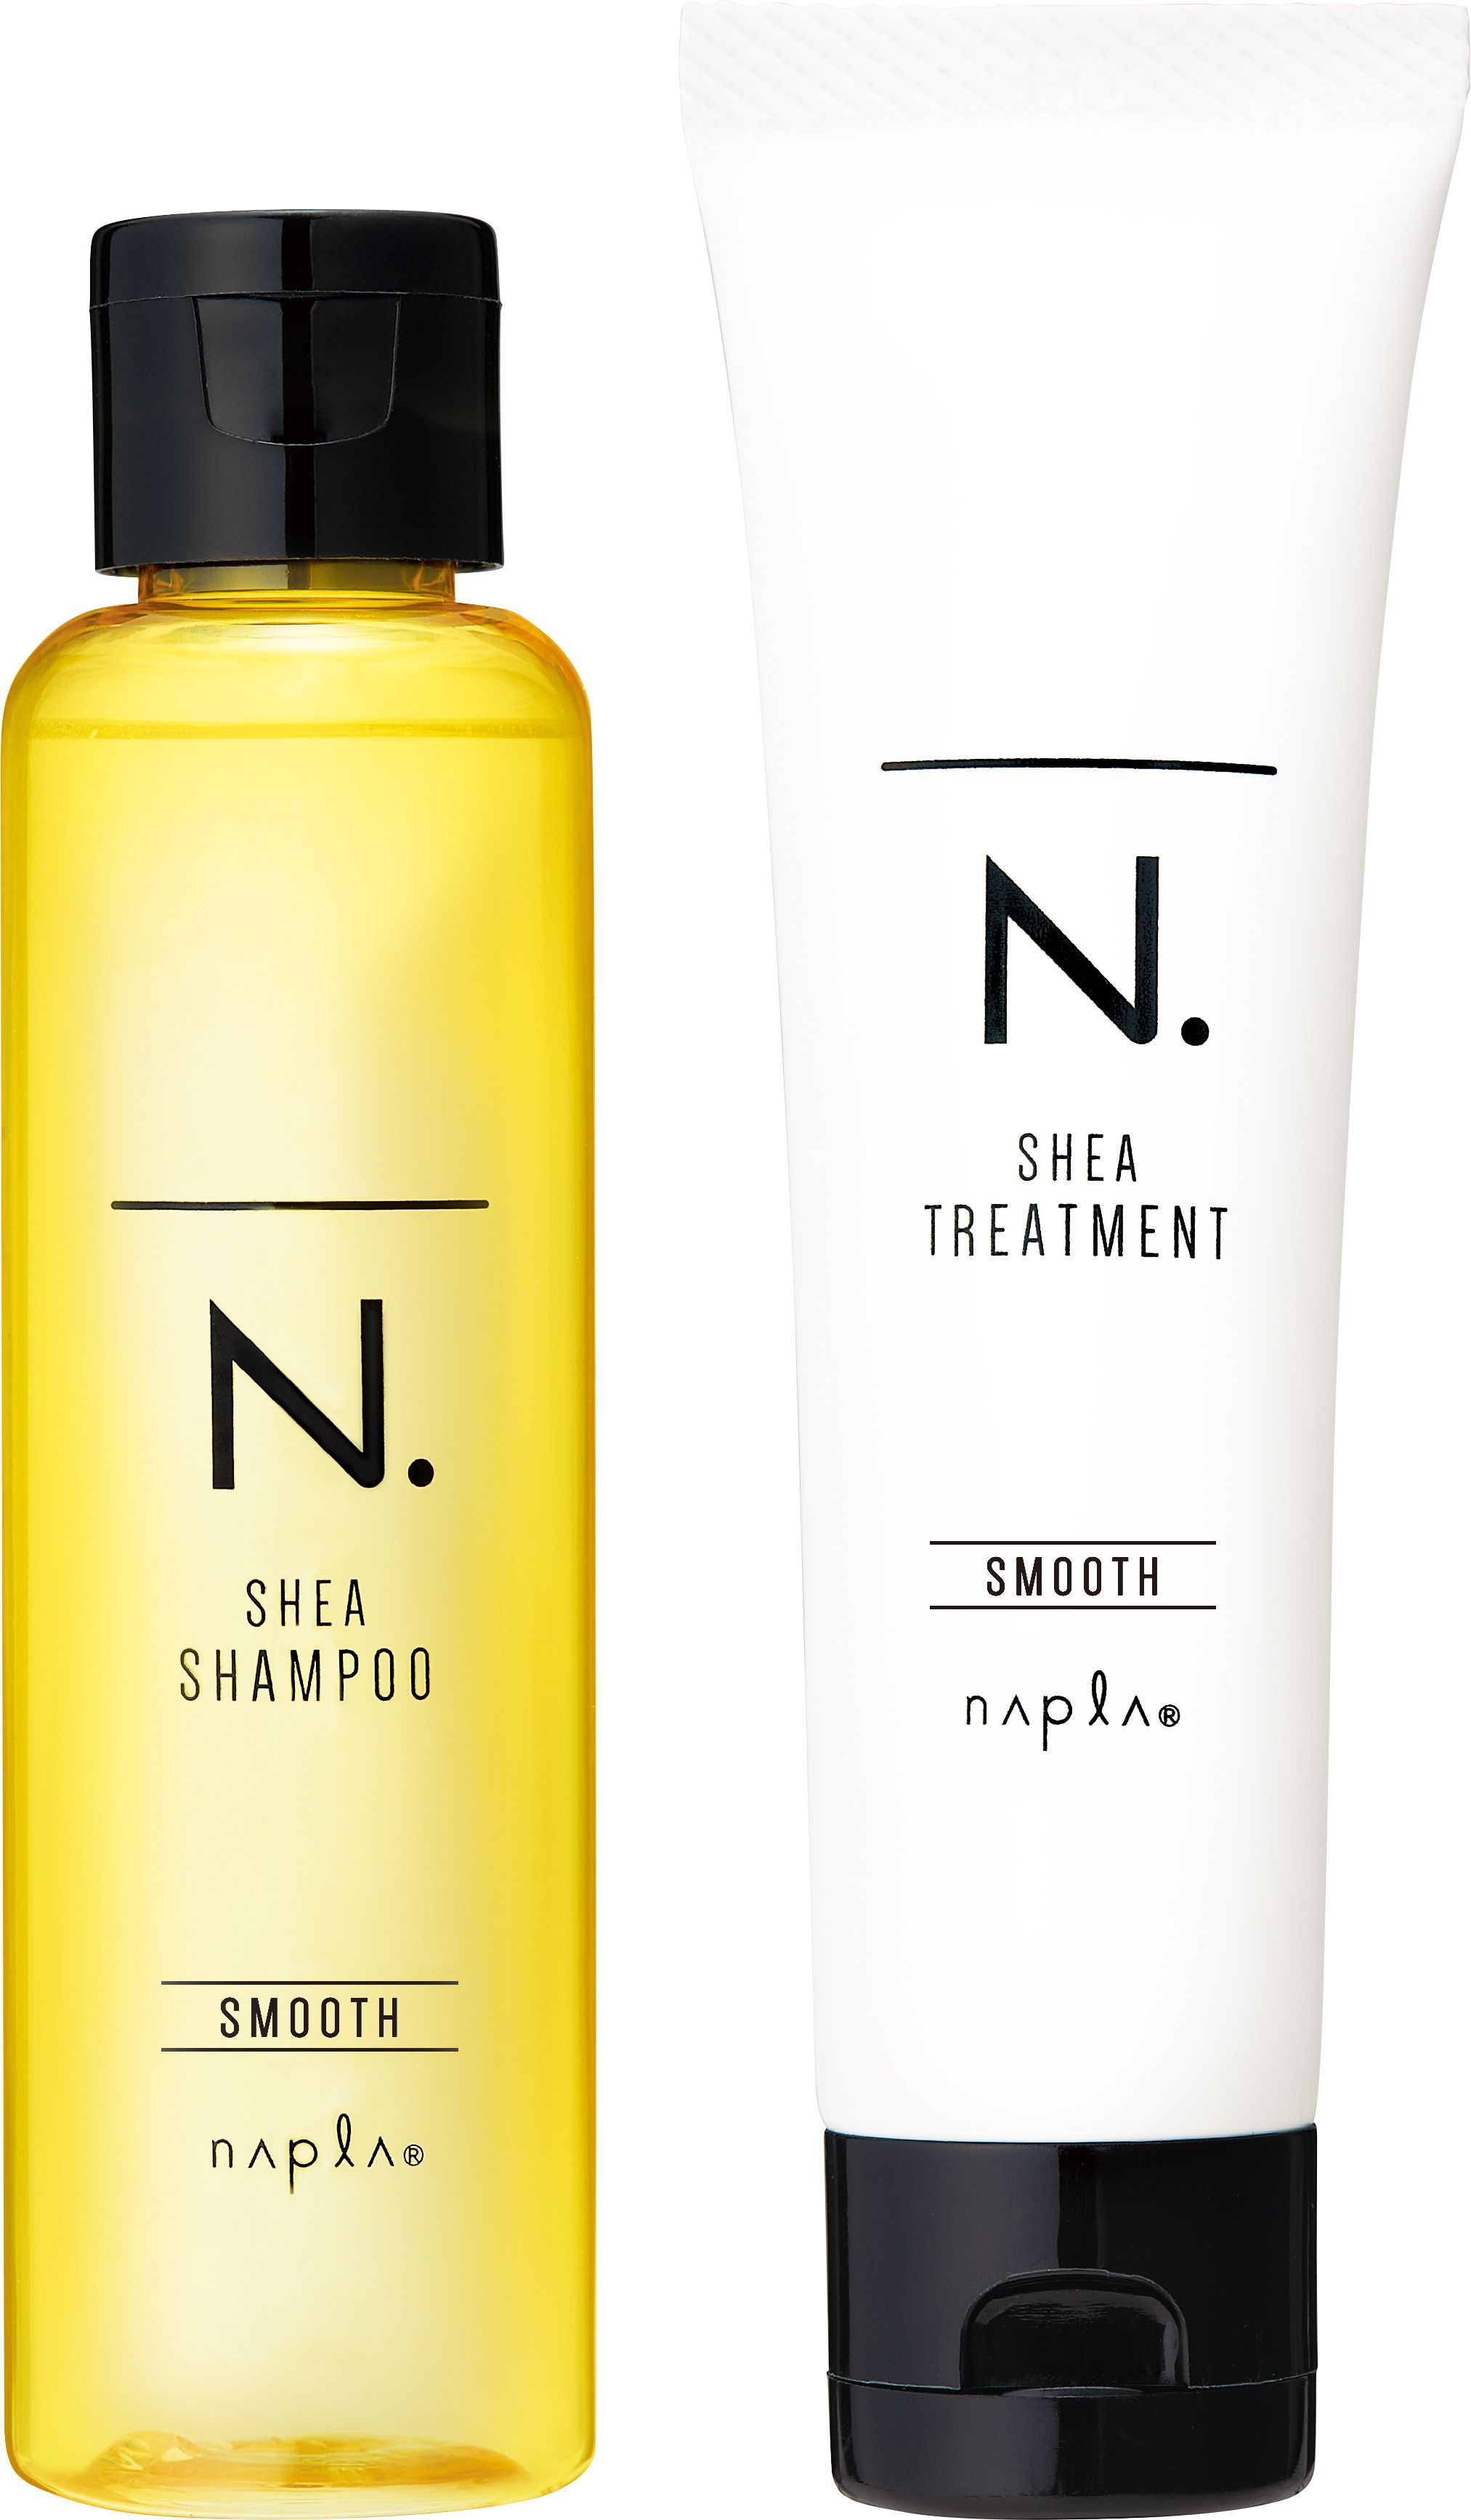 N.-SHEA-SHAMPOOTREATMENT-SET-SMOOTH.jpg